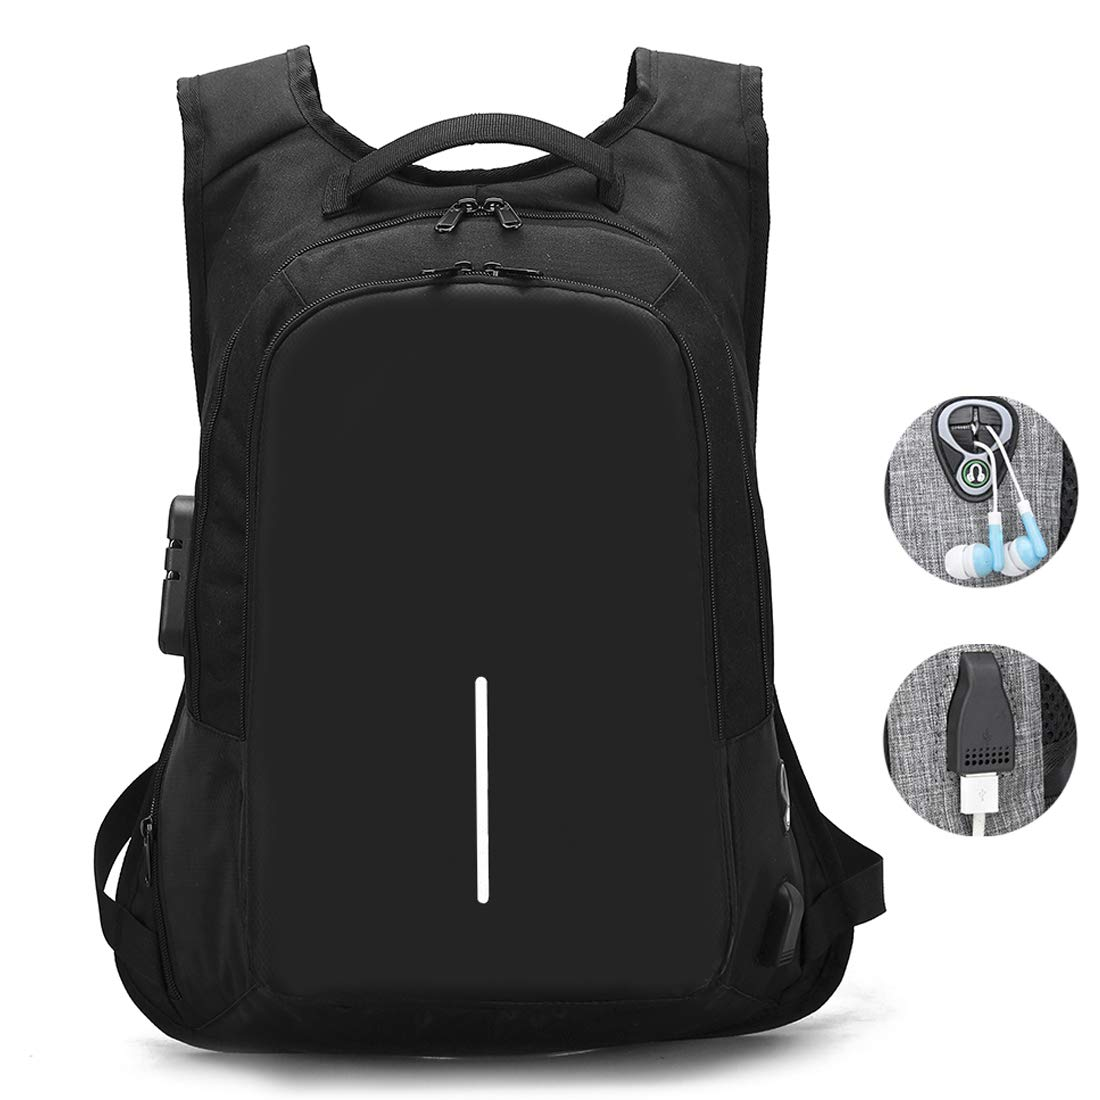 Travel Laptop Backpack, Business Anti Theft Laptop Backpacks with USB Charging Port and Headphone Interface,Water Resistant College School Computer Bag for Women & Men Fits 15.6 Inch Laptop (Black-1)